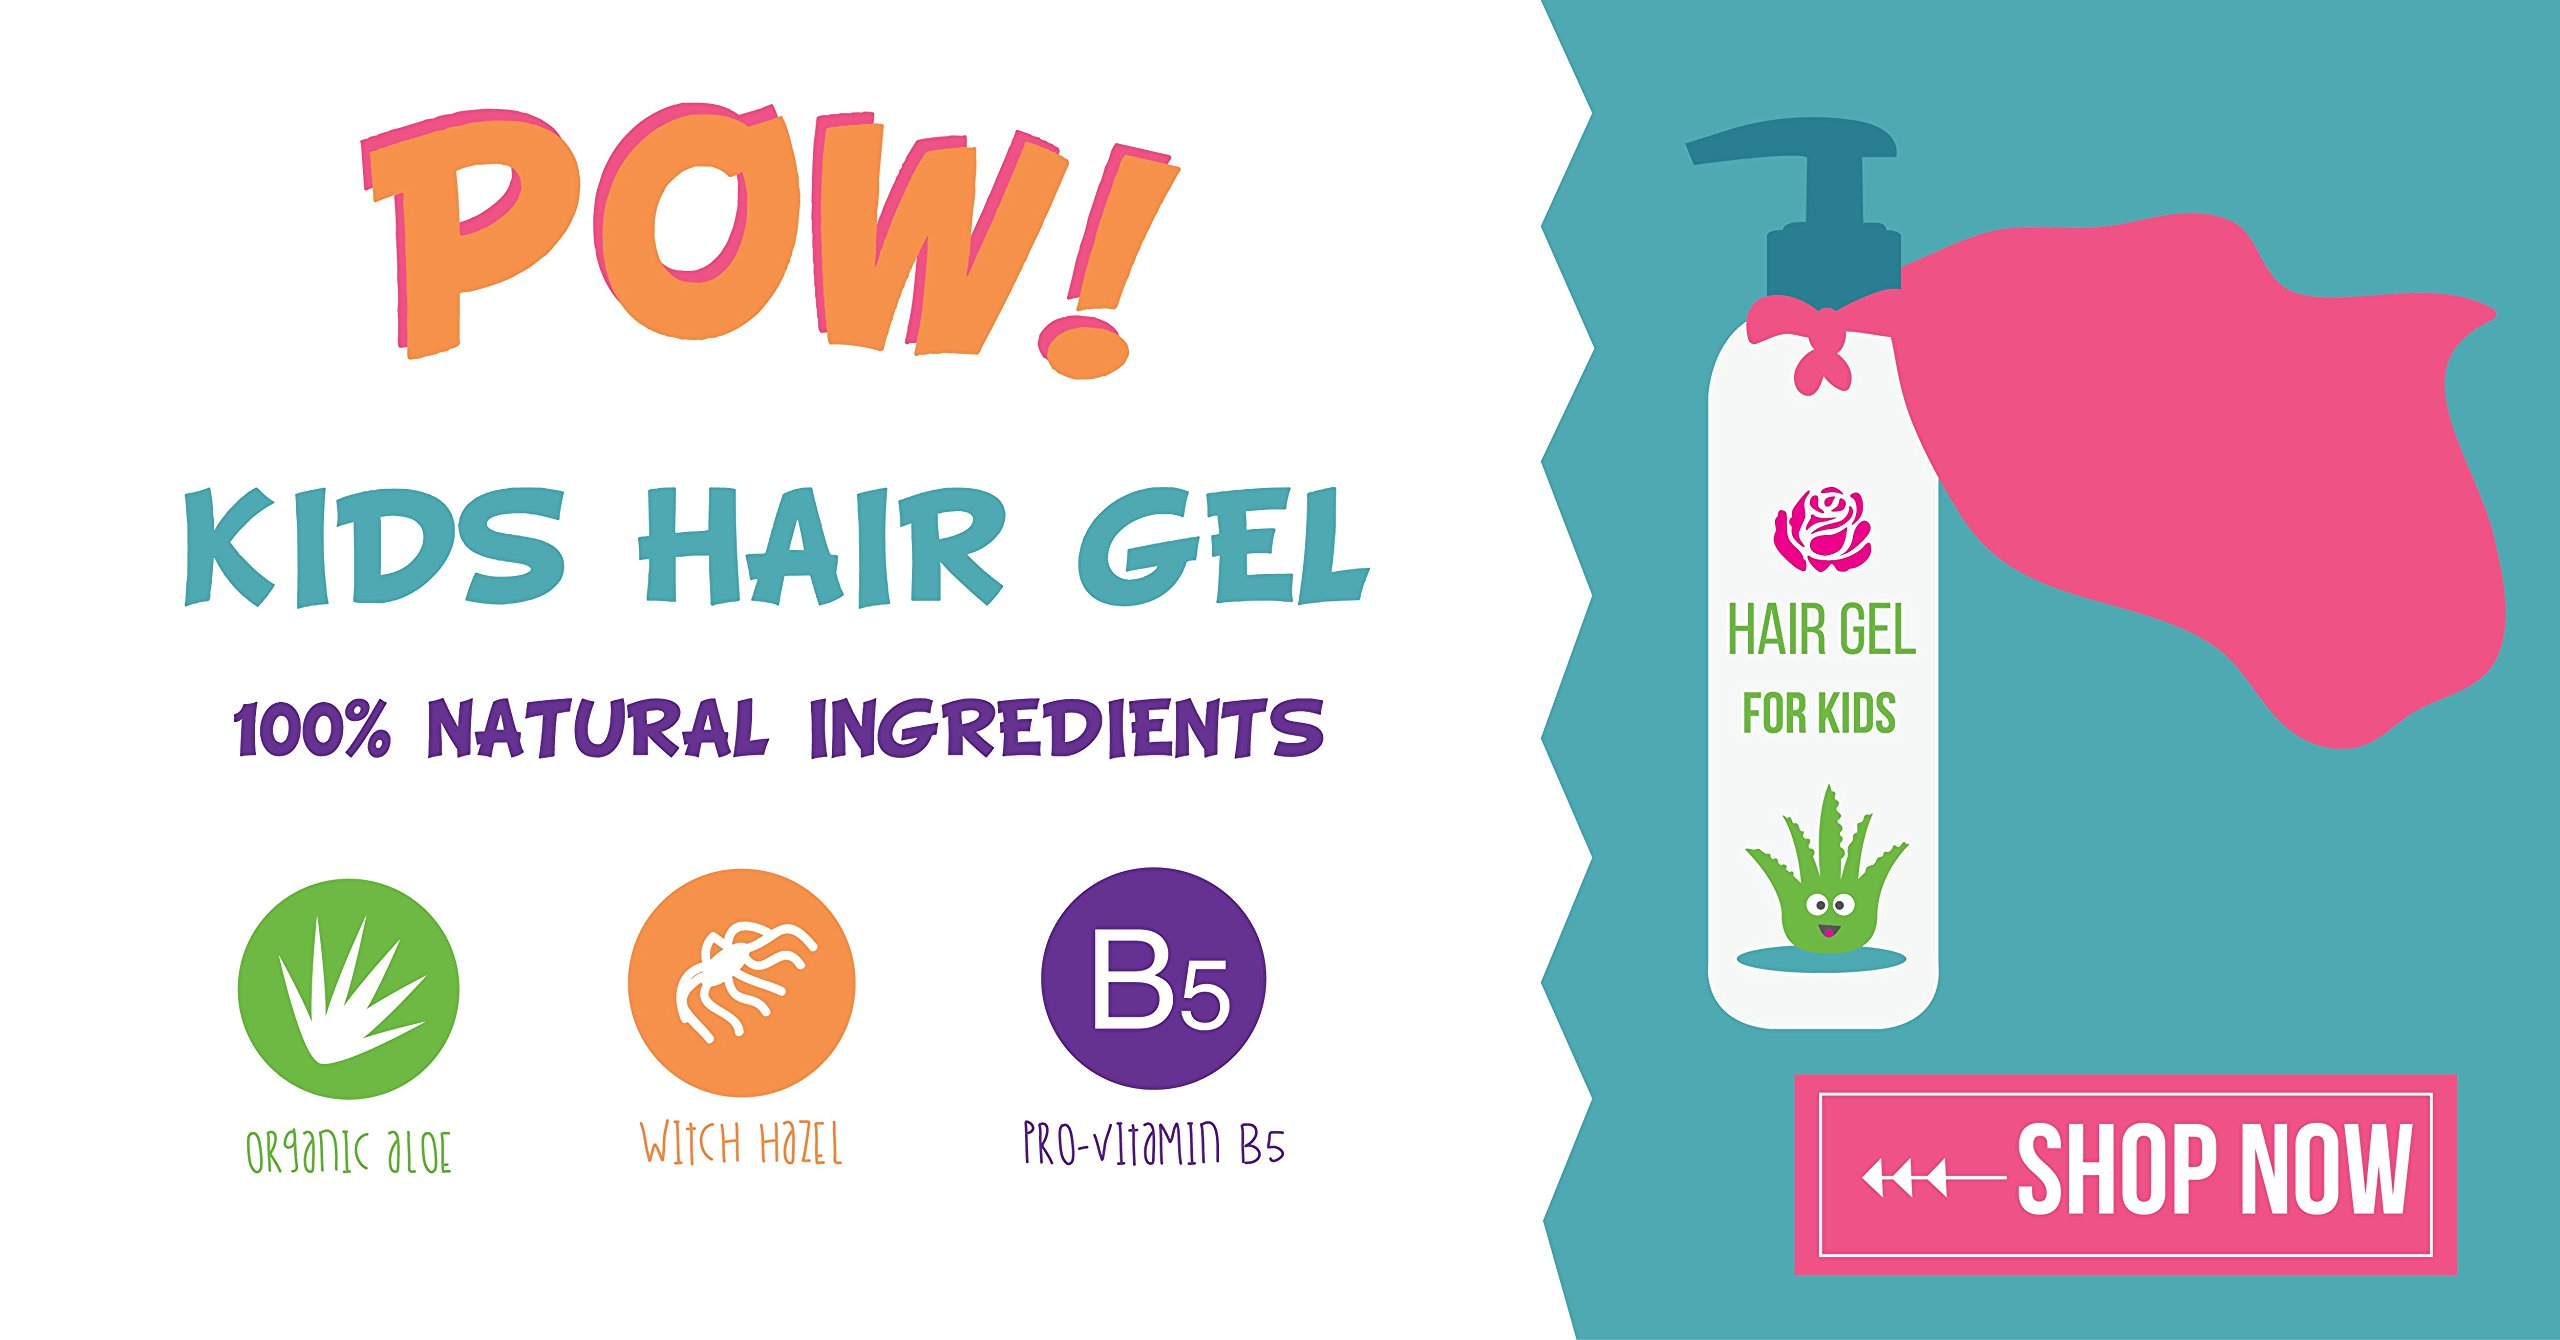 Hair Gel for Kids   Light Hold   Chemical Free   Made with Organic Aloe Vera and Vitamins   Safe on Babies, Toddlers, Men and Women   Always Paraben, Sulfate & Fragrance Free   Made in USA (1 Unit) by Little Roseberry (Image #6)